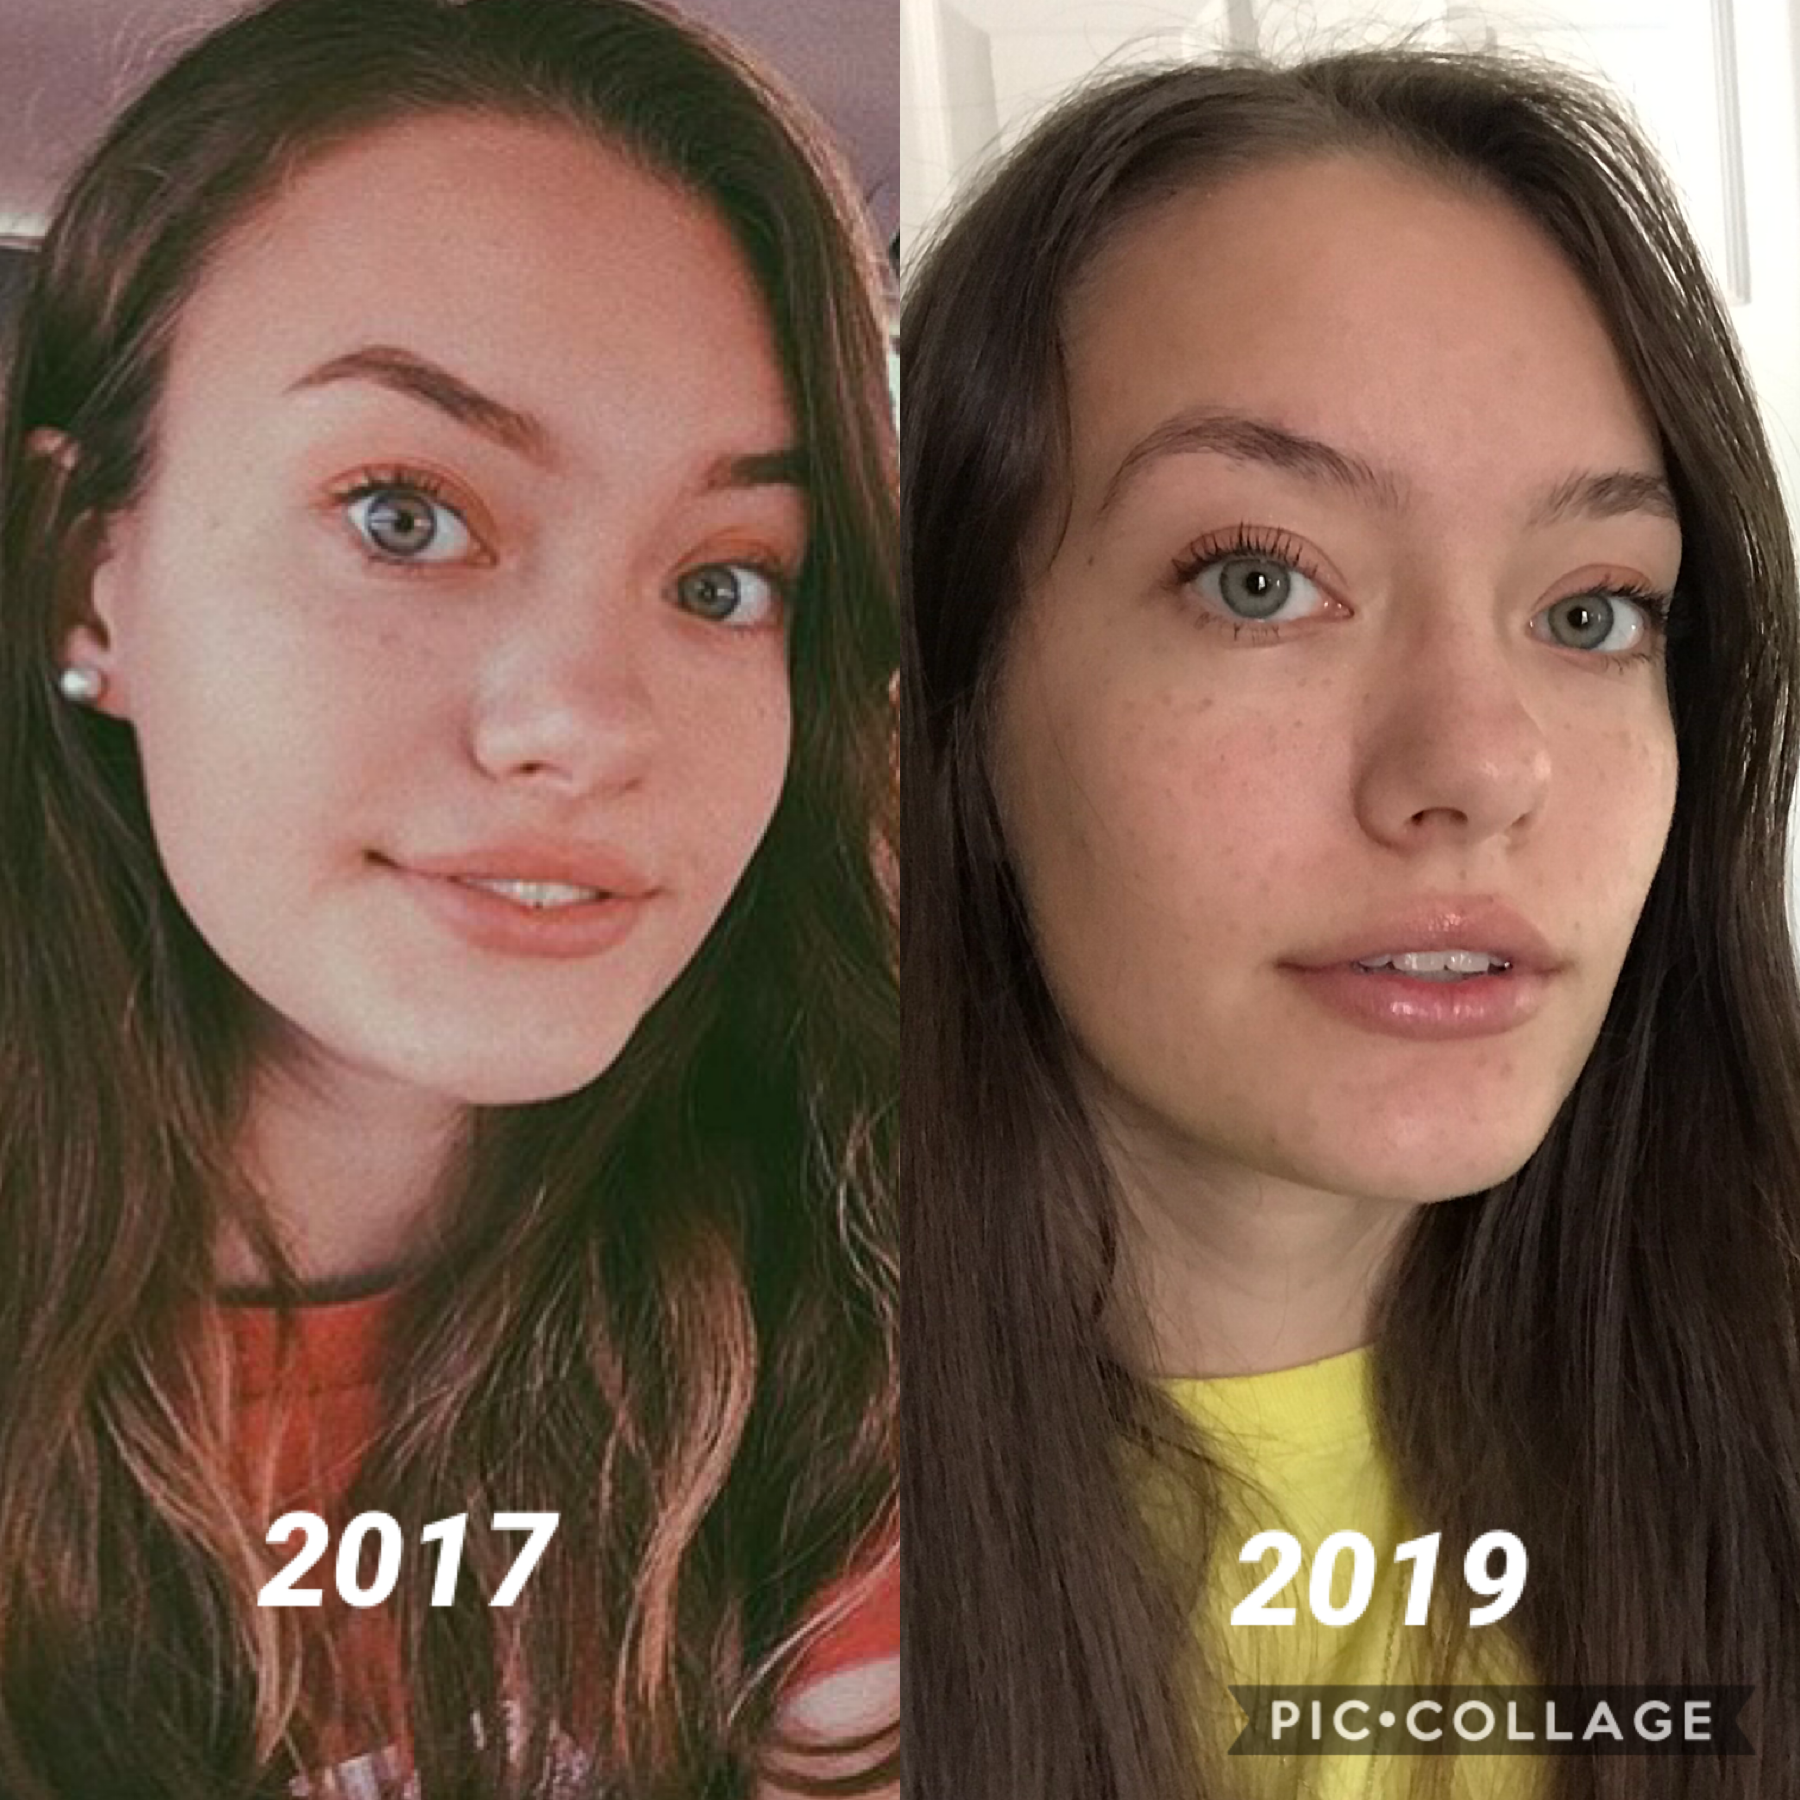 tw? has she glowed up 🤭 (minus the fact that i don't fill in my eyebrows anymore lol) also i can't tell if my now pic is bc i've lost weight or gained bone structure 😂 rn i weigh the lightest i've been since freshman year oof. the first pic is from sophom